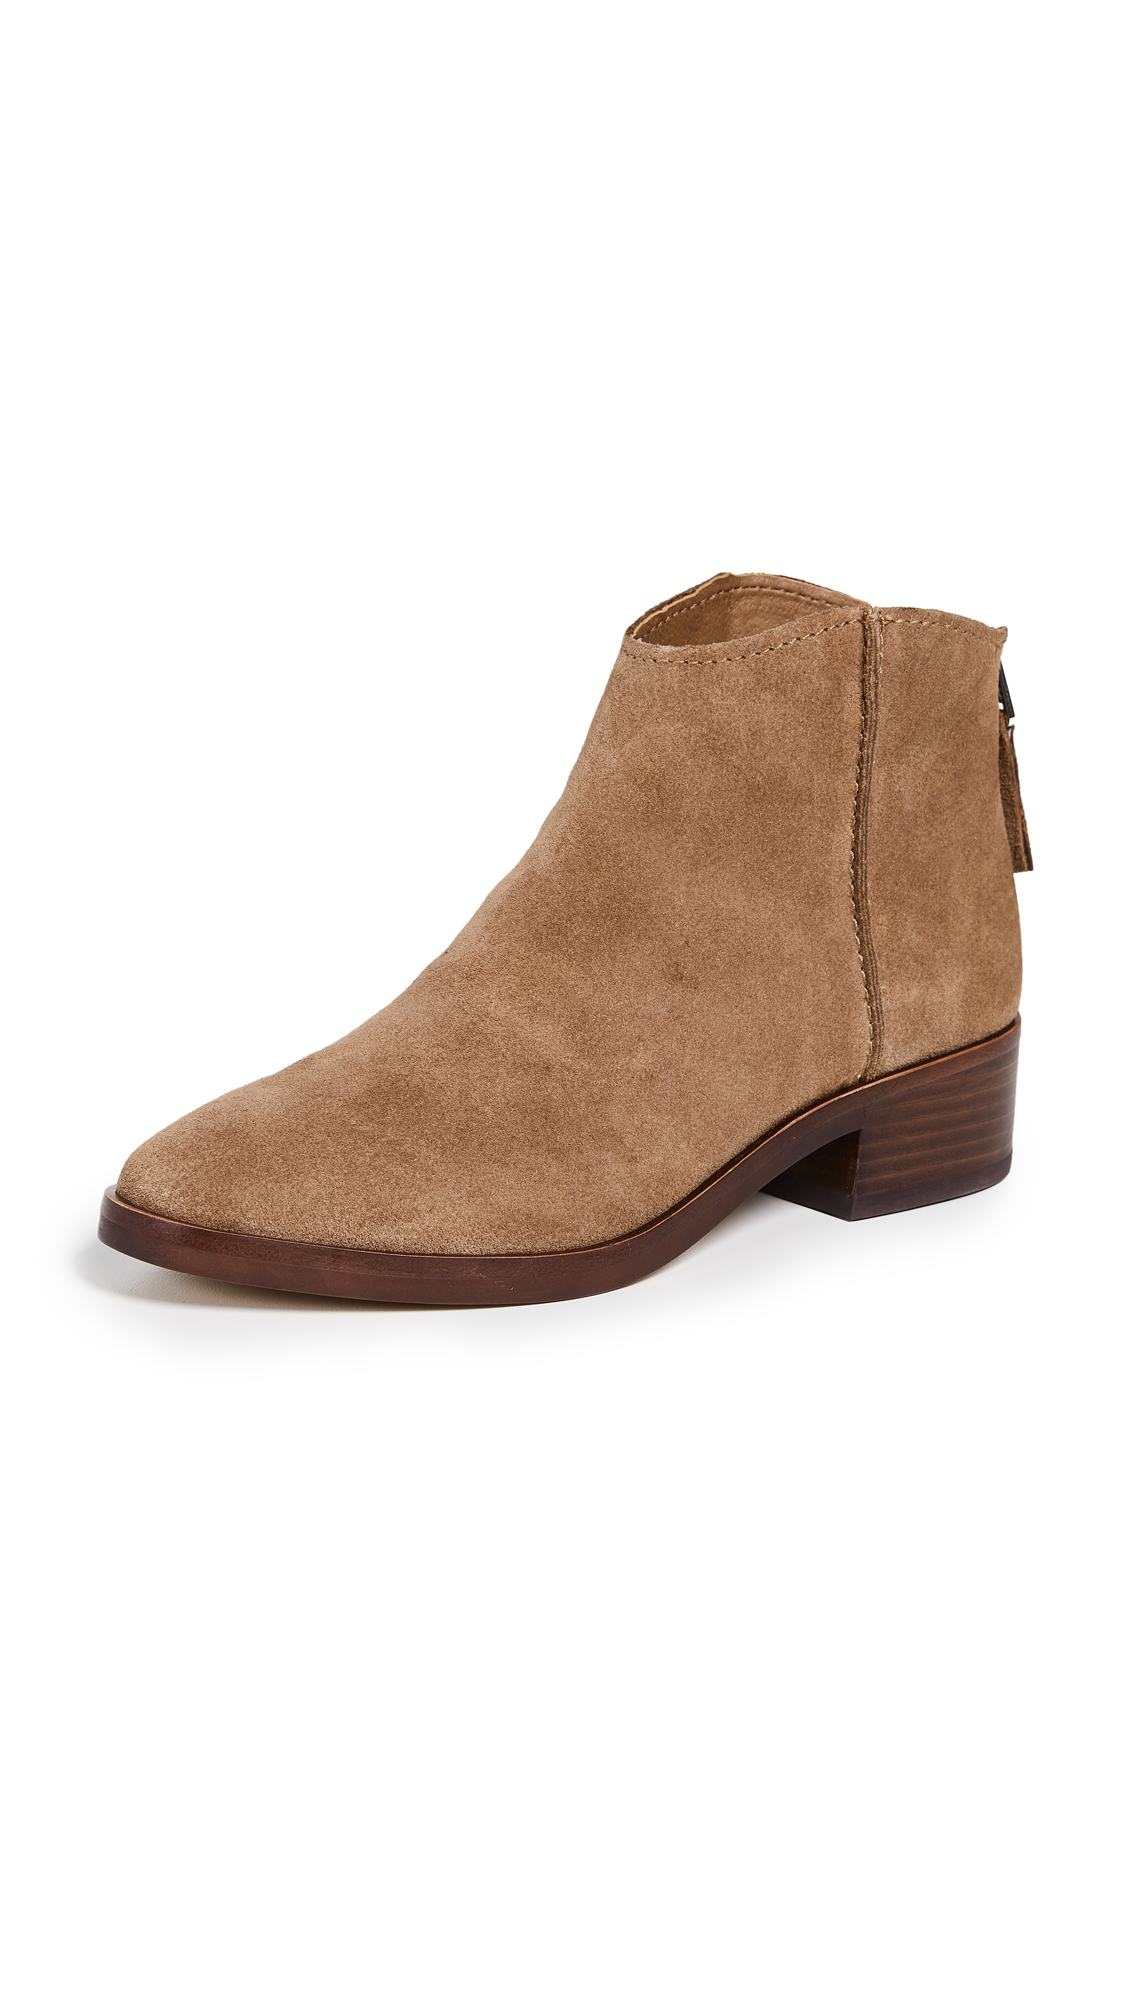 Dolce Vita Tucker Booties - Dark Saddle